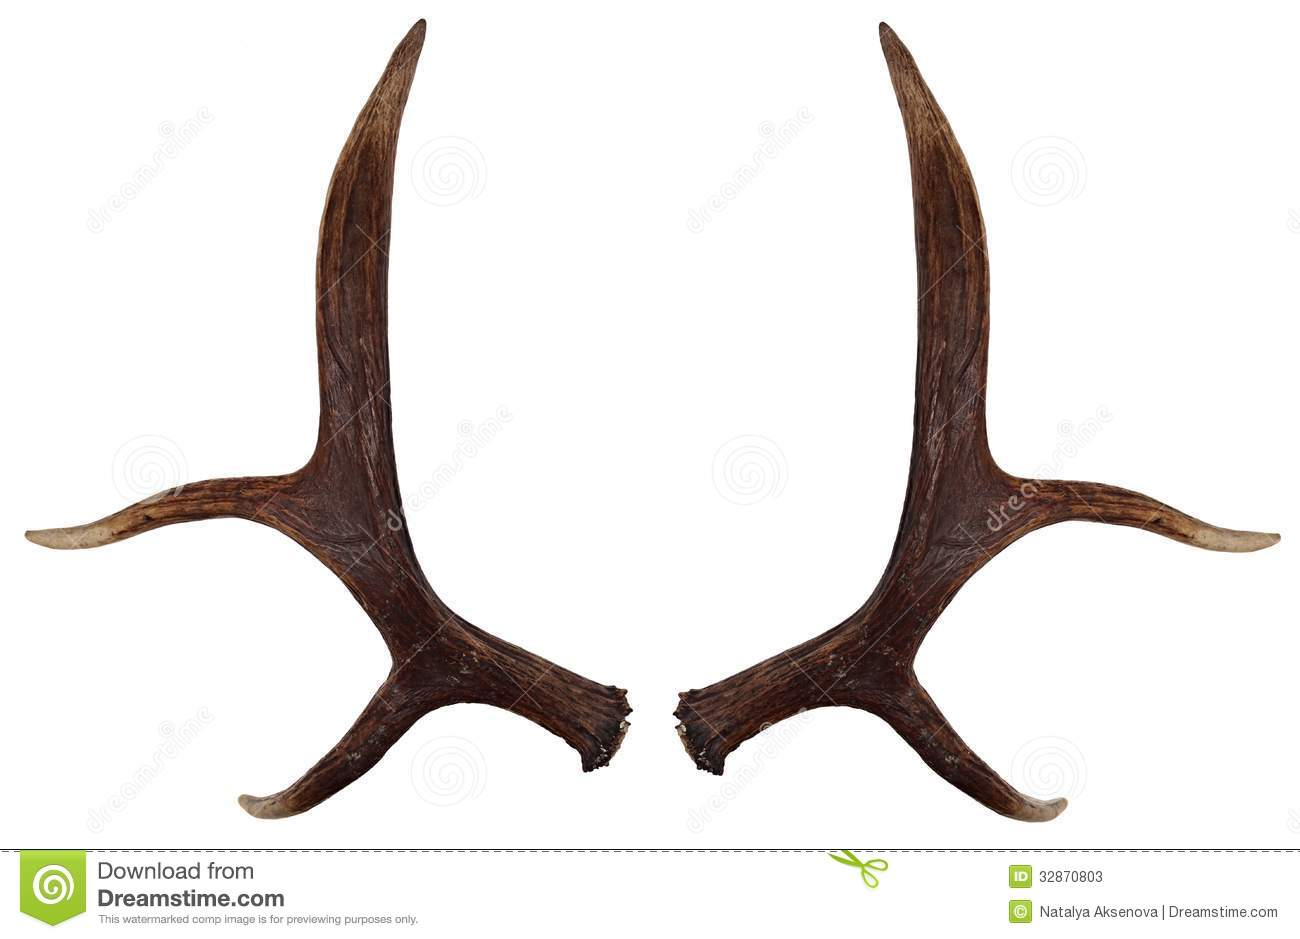 Antlers clipart Clipground